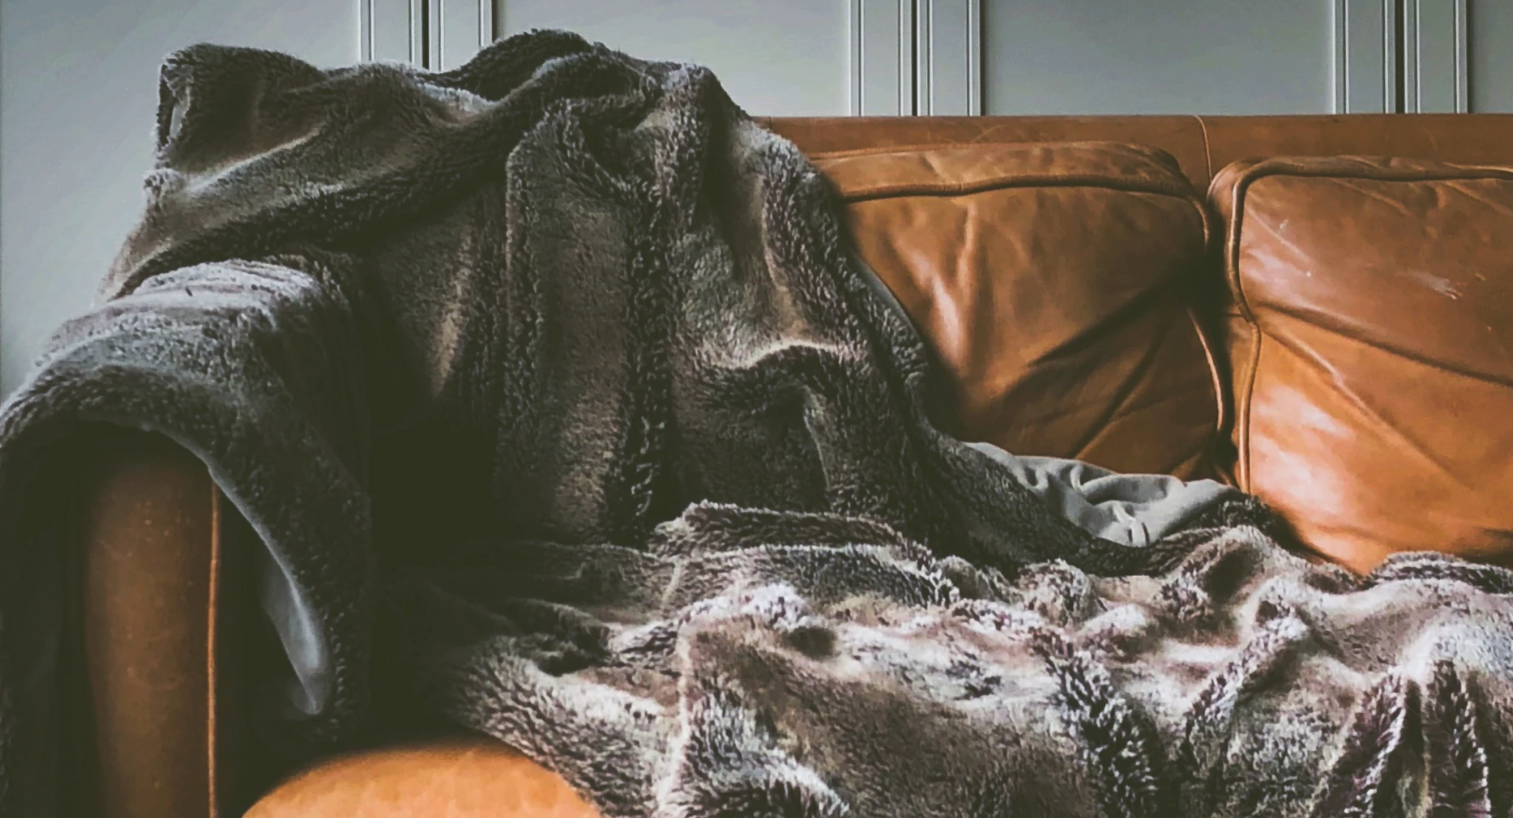 Soft blanket on a brown leather couch